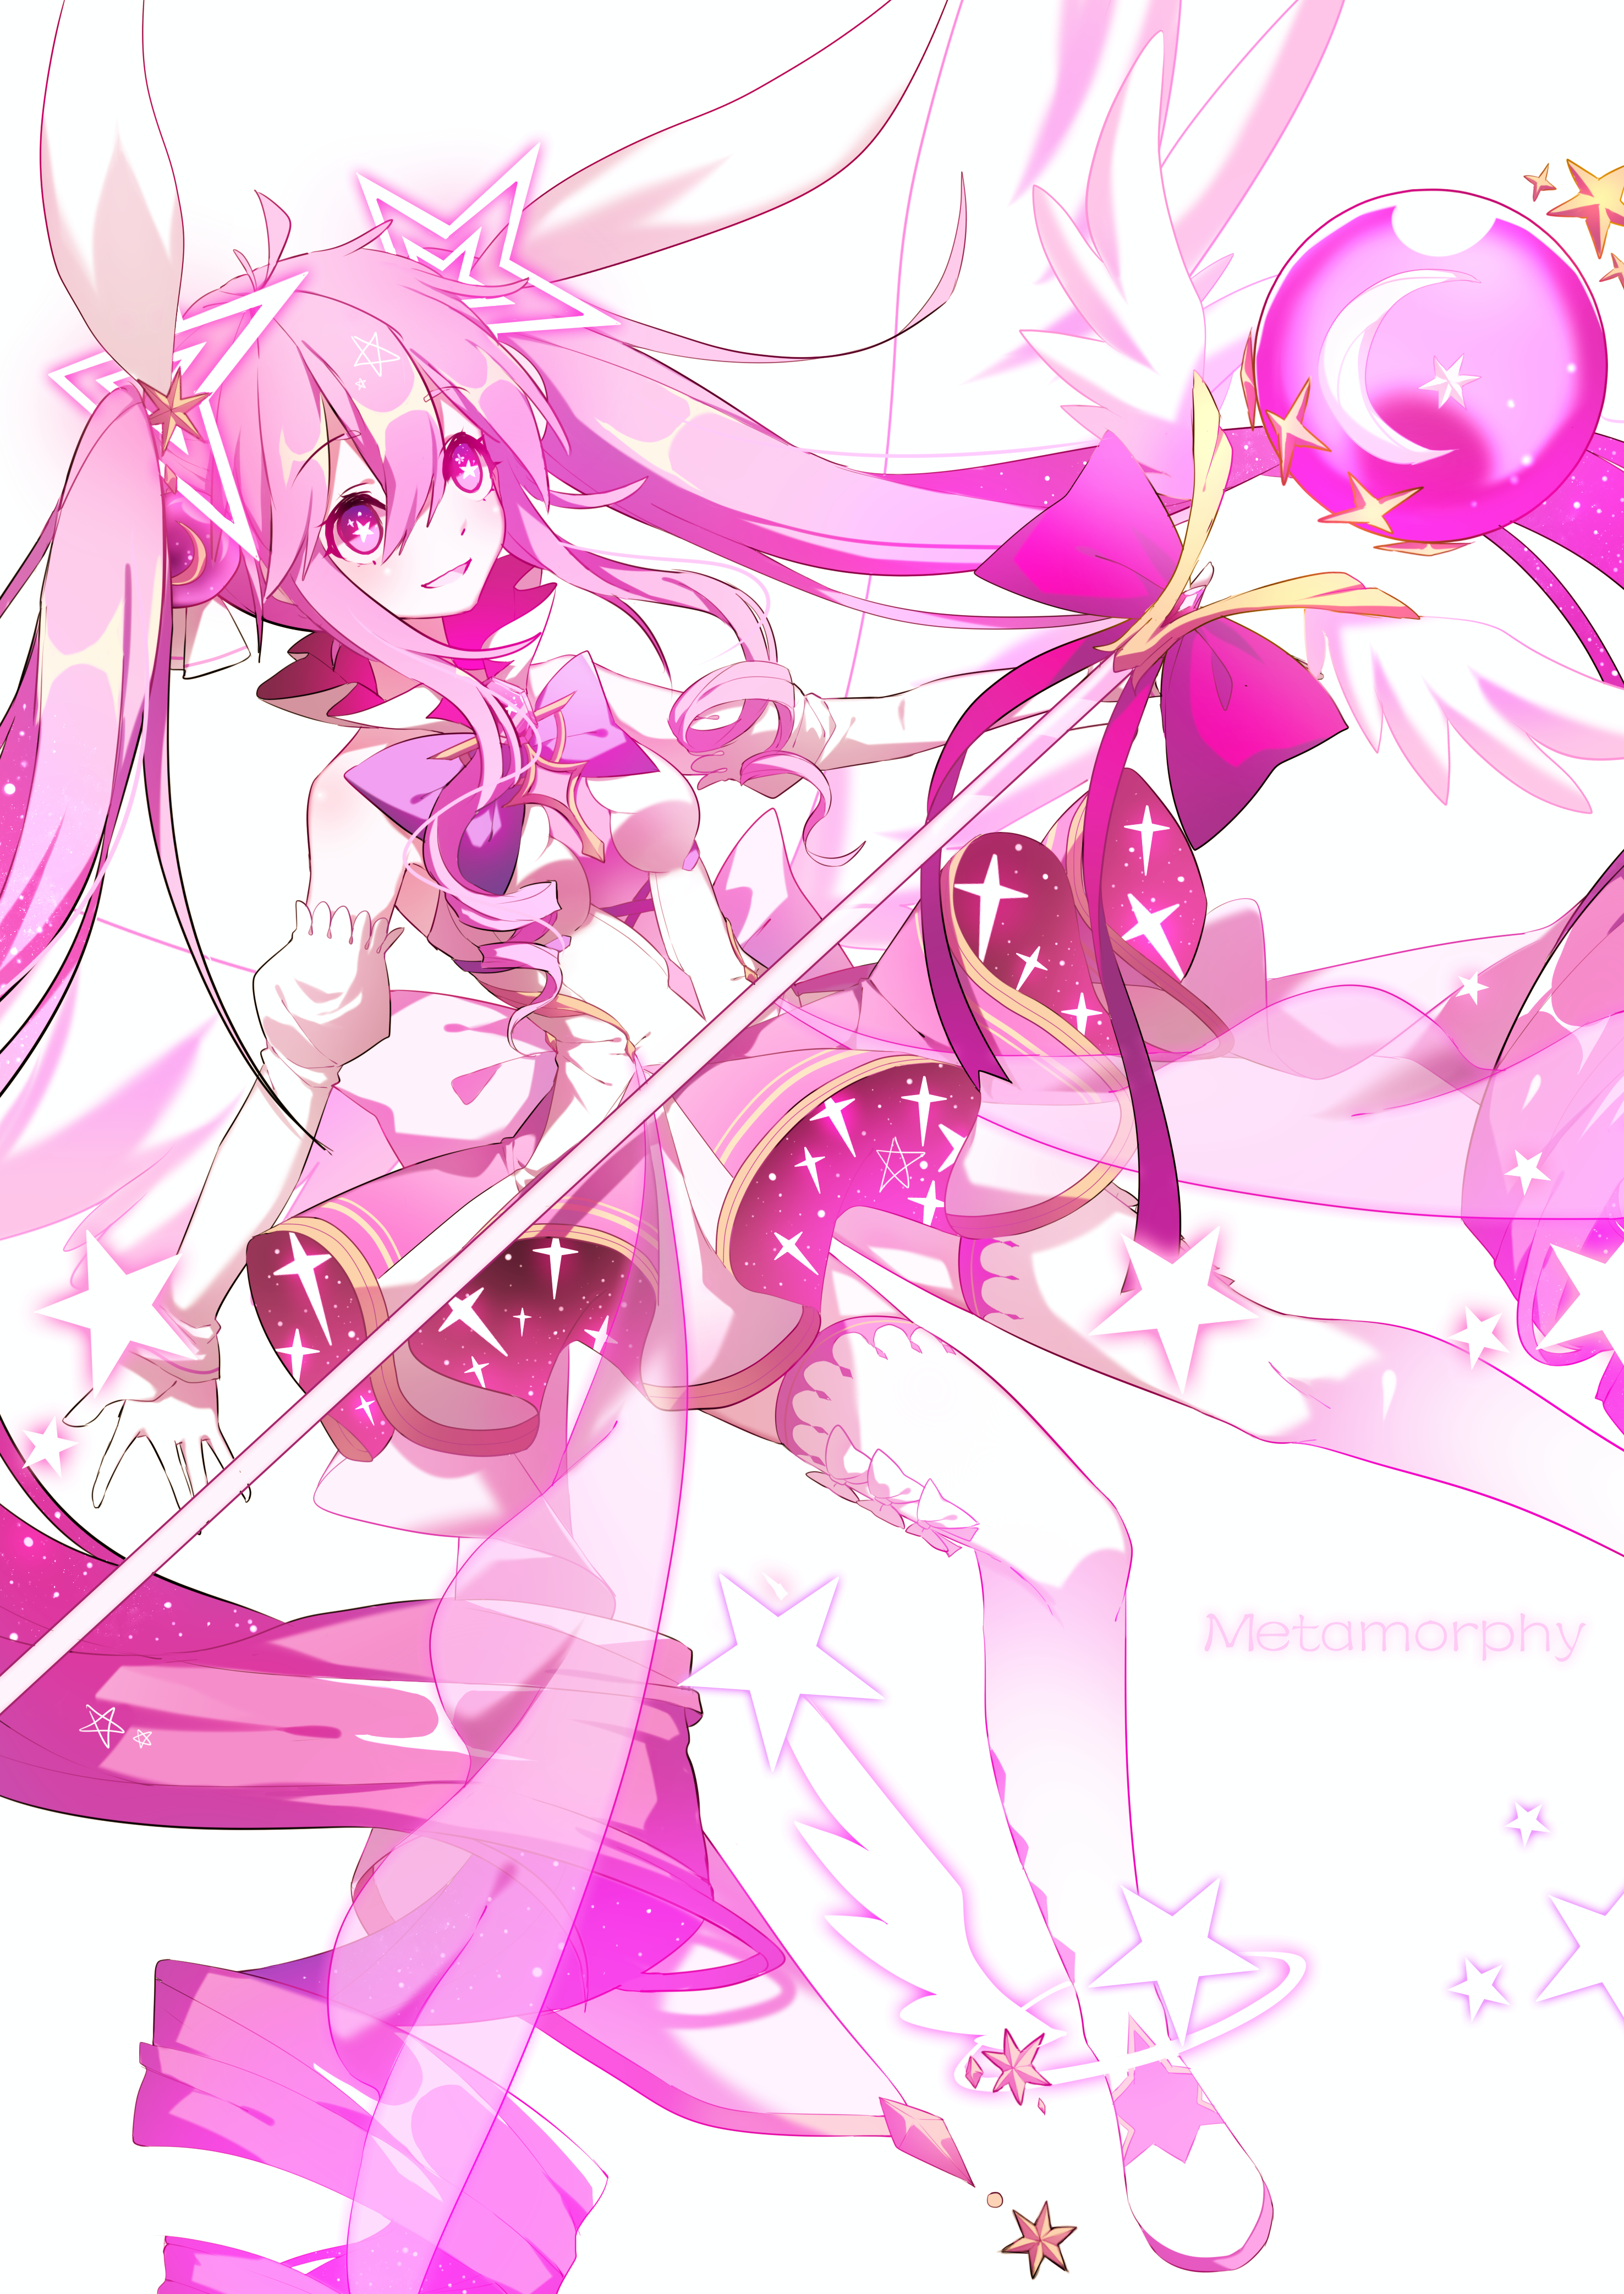 Aisha Cosplay Costume (Magical Girl) from Elsword